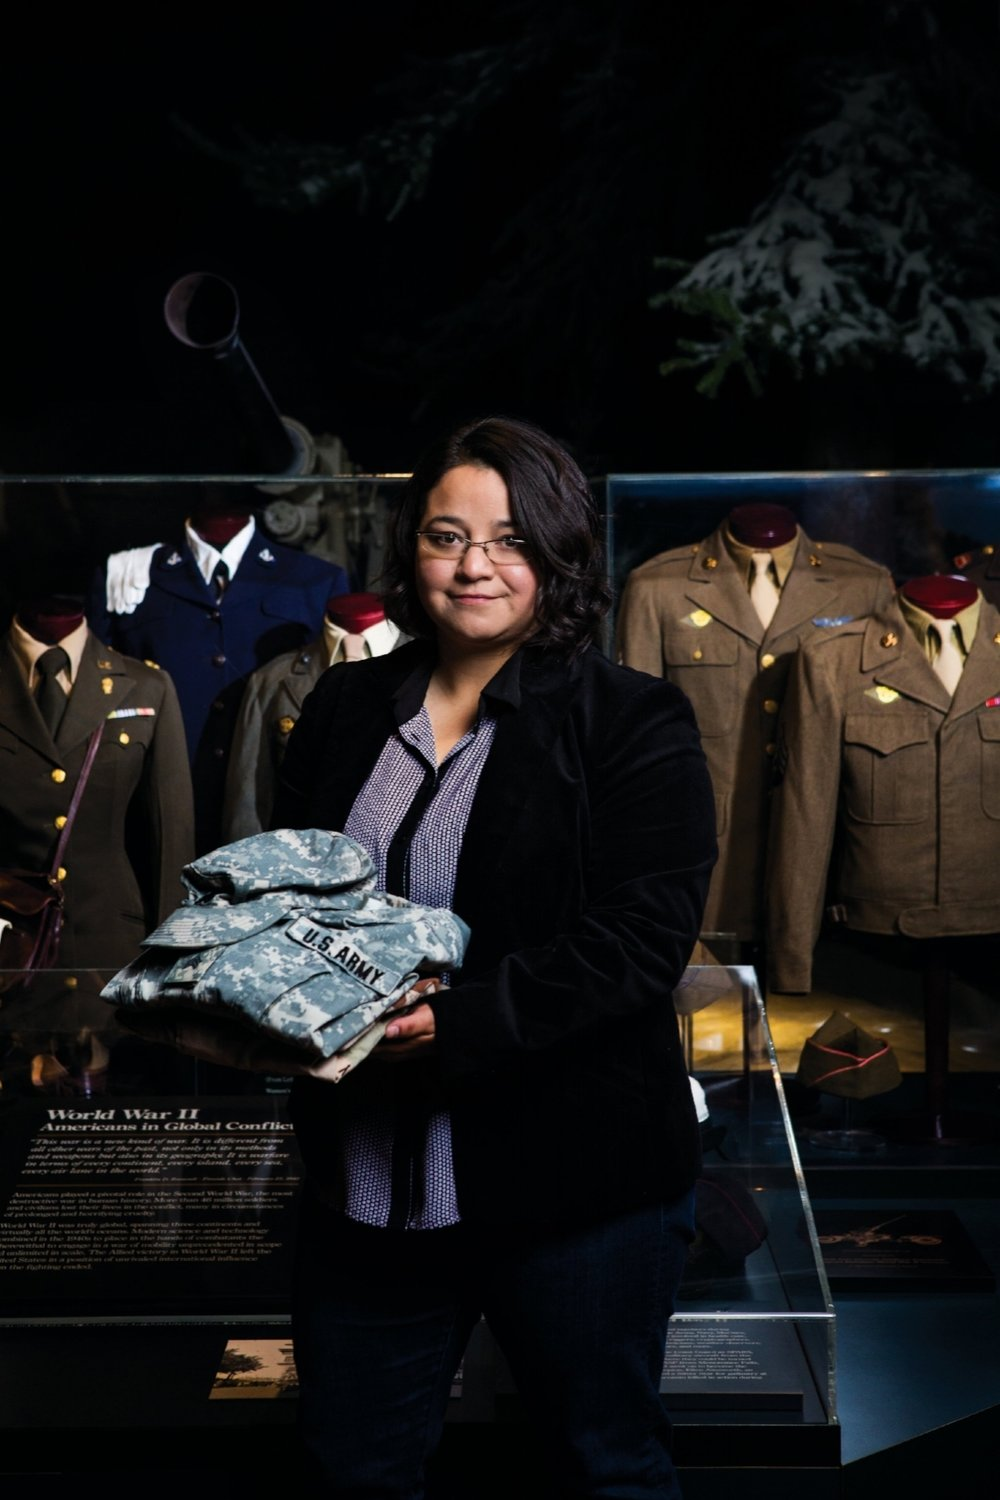 Yvette M. Pino - Yvette is a U.S. Army veteran and works at the Wisconsin Veterans Museum as the Traveling Art Exhibit Coordinator. Yvette deployed to Iraq from 2003-2004 and founded the Veteran Print Project after earning her Bachelor's of Fine Arts from the University of Wisconsin - Madison. Yvette exhibits her work nationally.